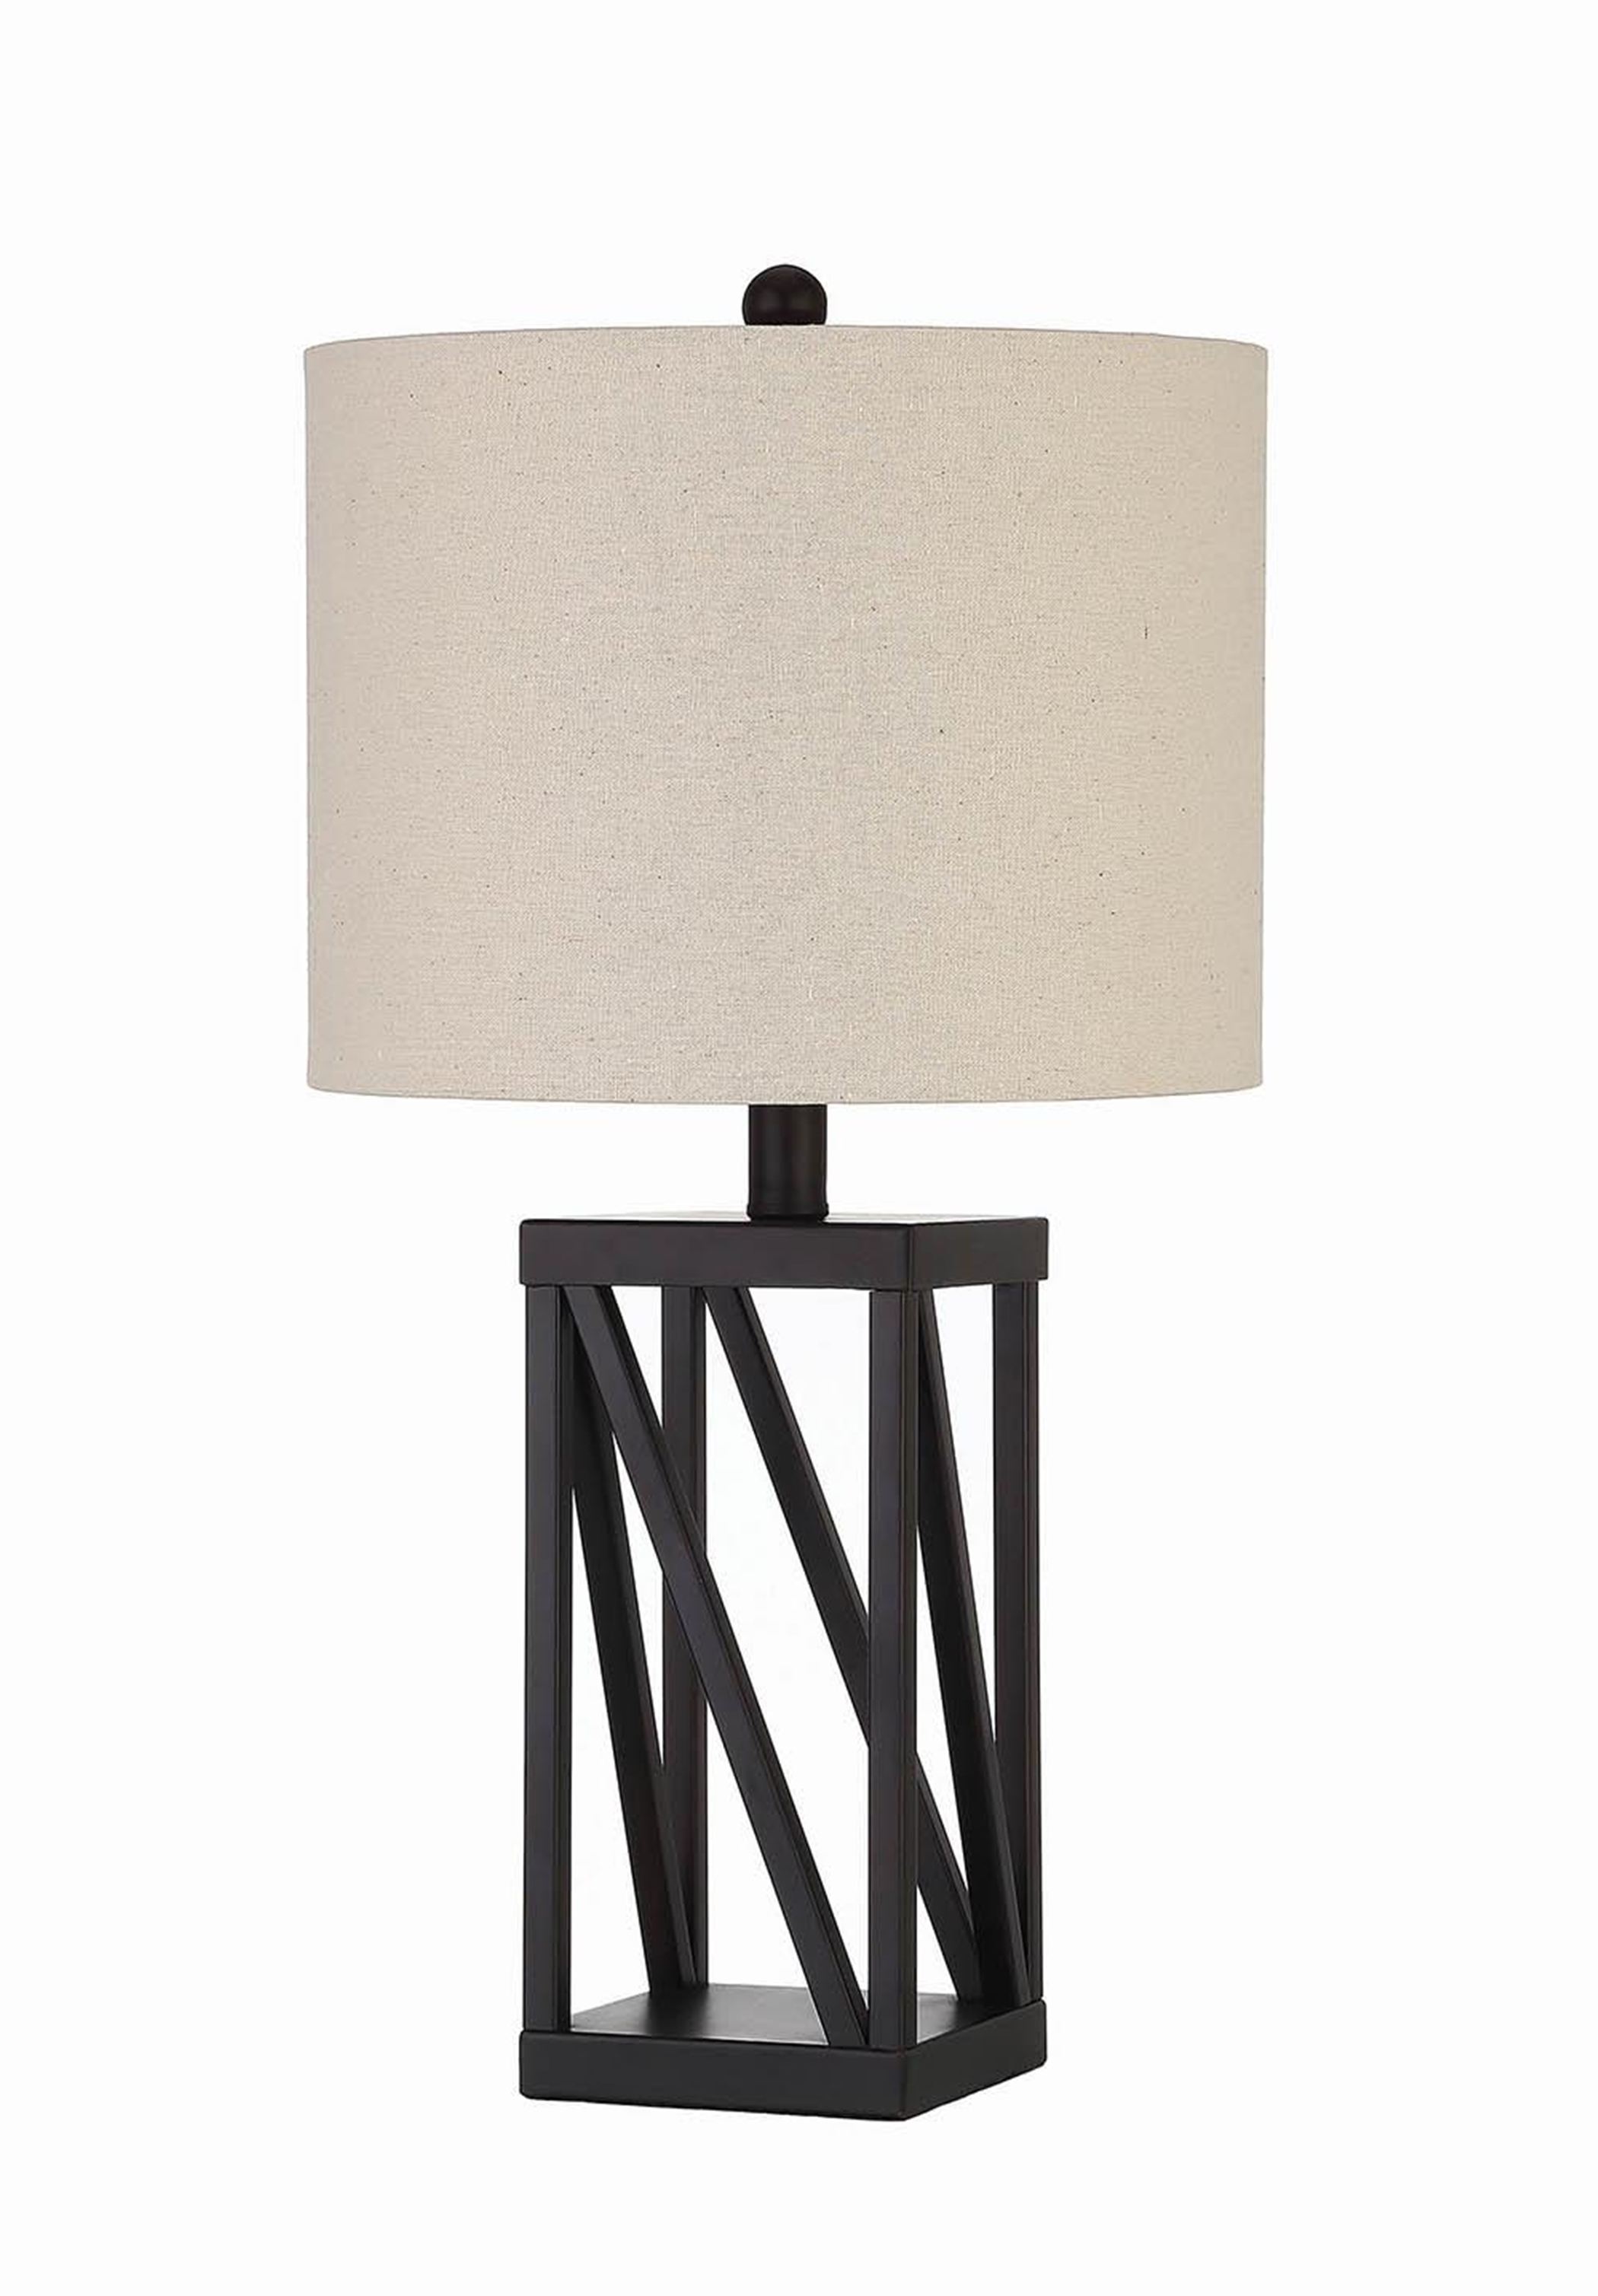 Transitional Black Table Lamp